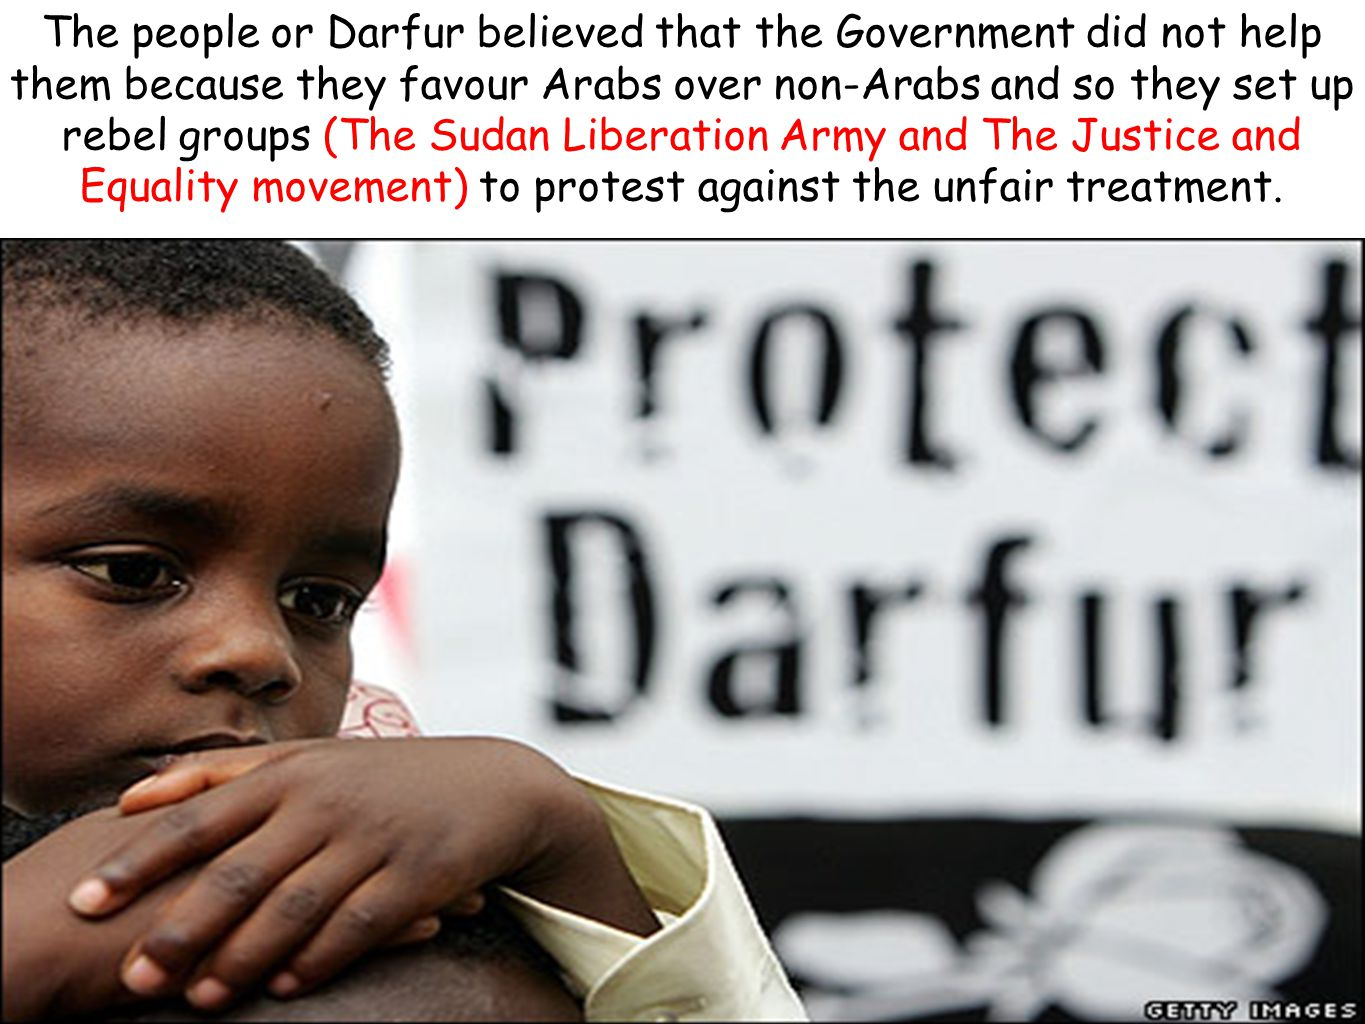 The people or Darfur believed that the Government did not help them because they favour Arabs over non-Arabs and so they set up rebel groups (The Sudan Liberation Army and The Justice and Equality movement) to protest against the unfair treatment.